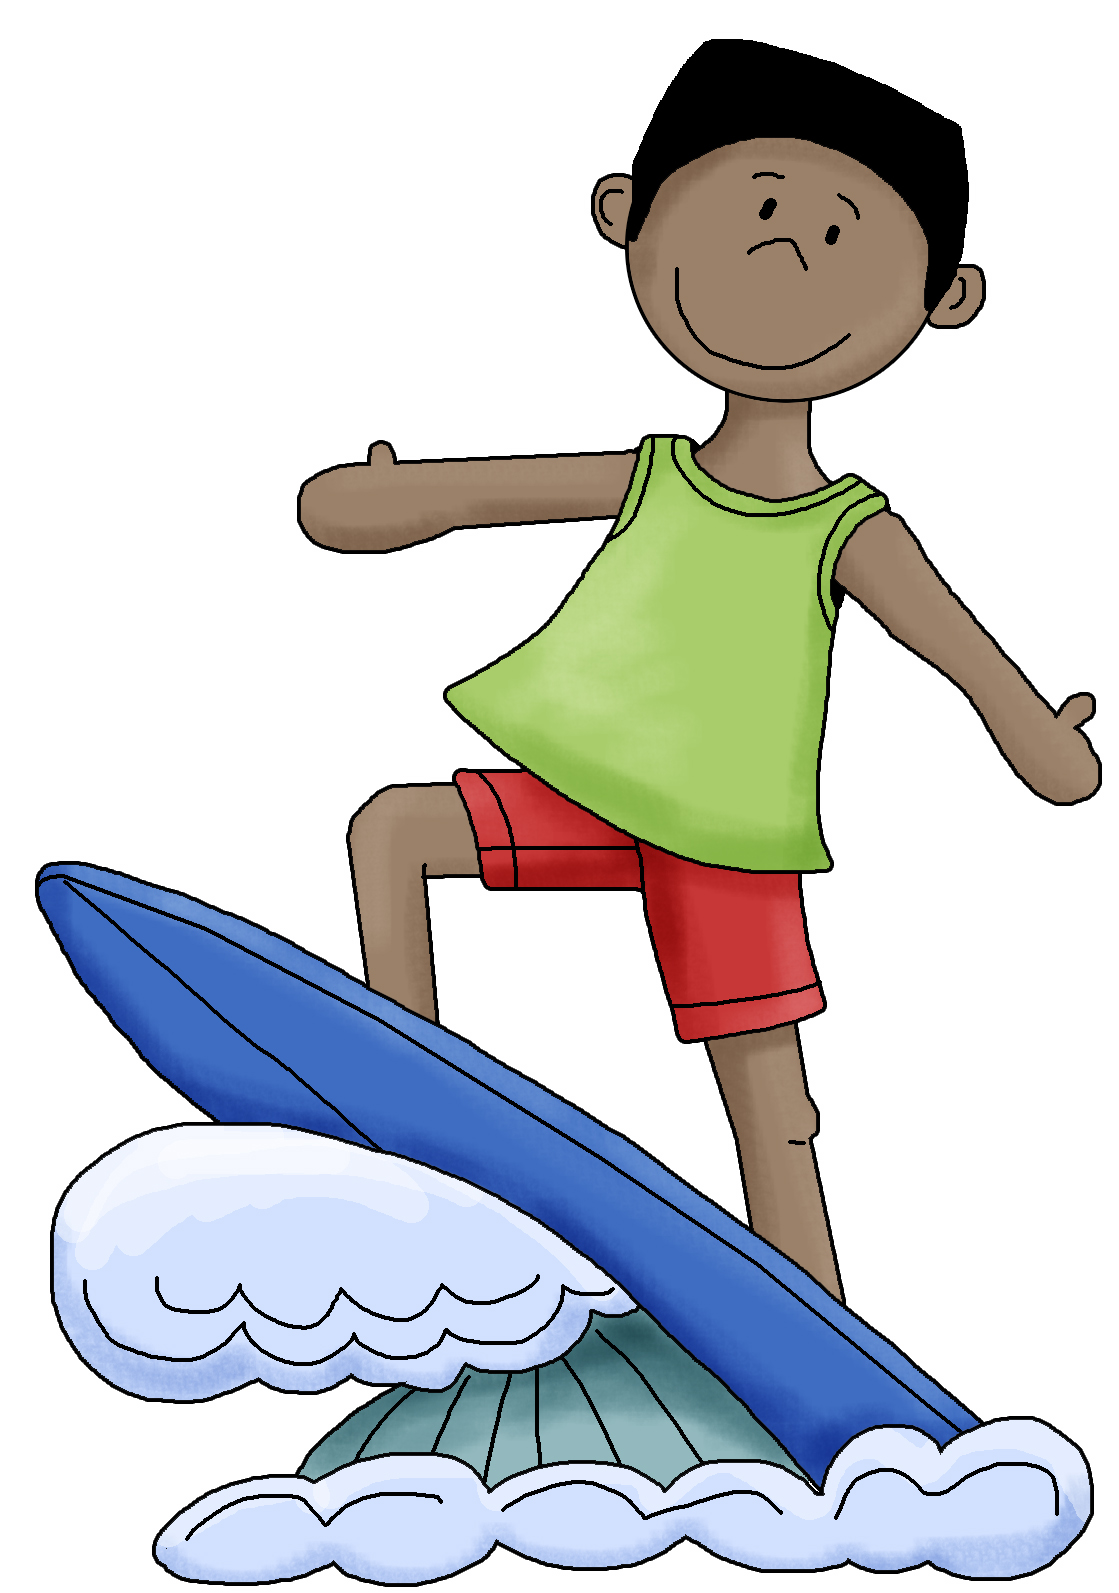 Free Surfer Cliparts, Download Free Clip Art, Free Clip Art on.